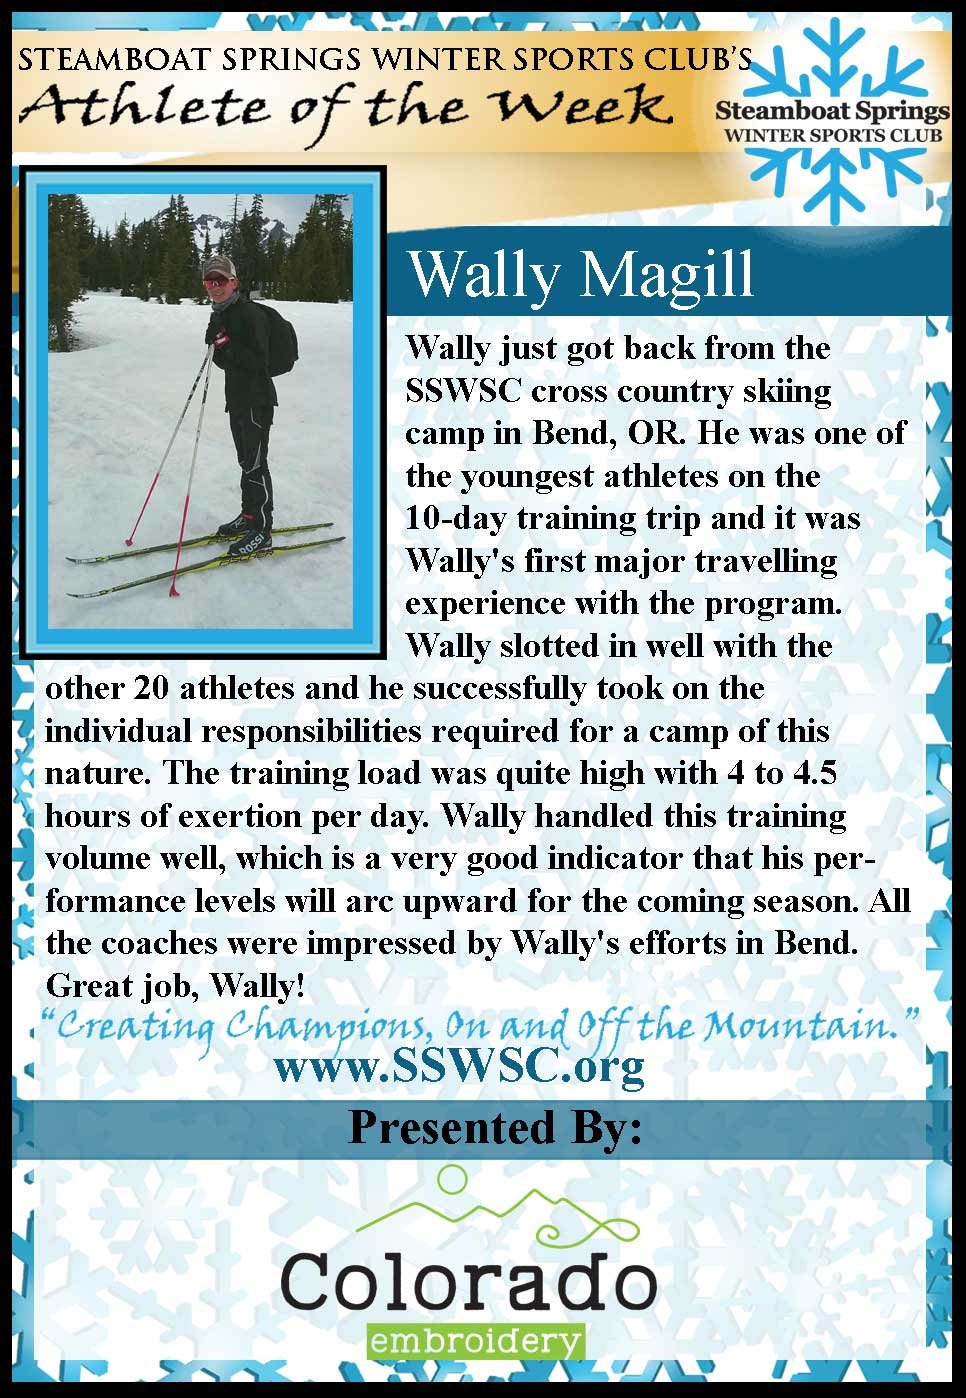 Athlete of the Week - Wally Magill